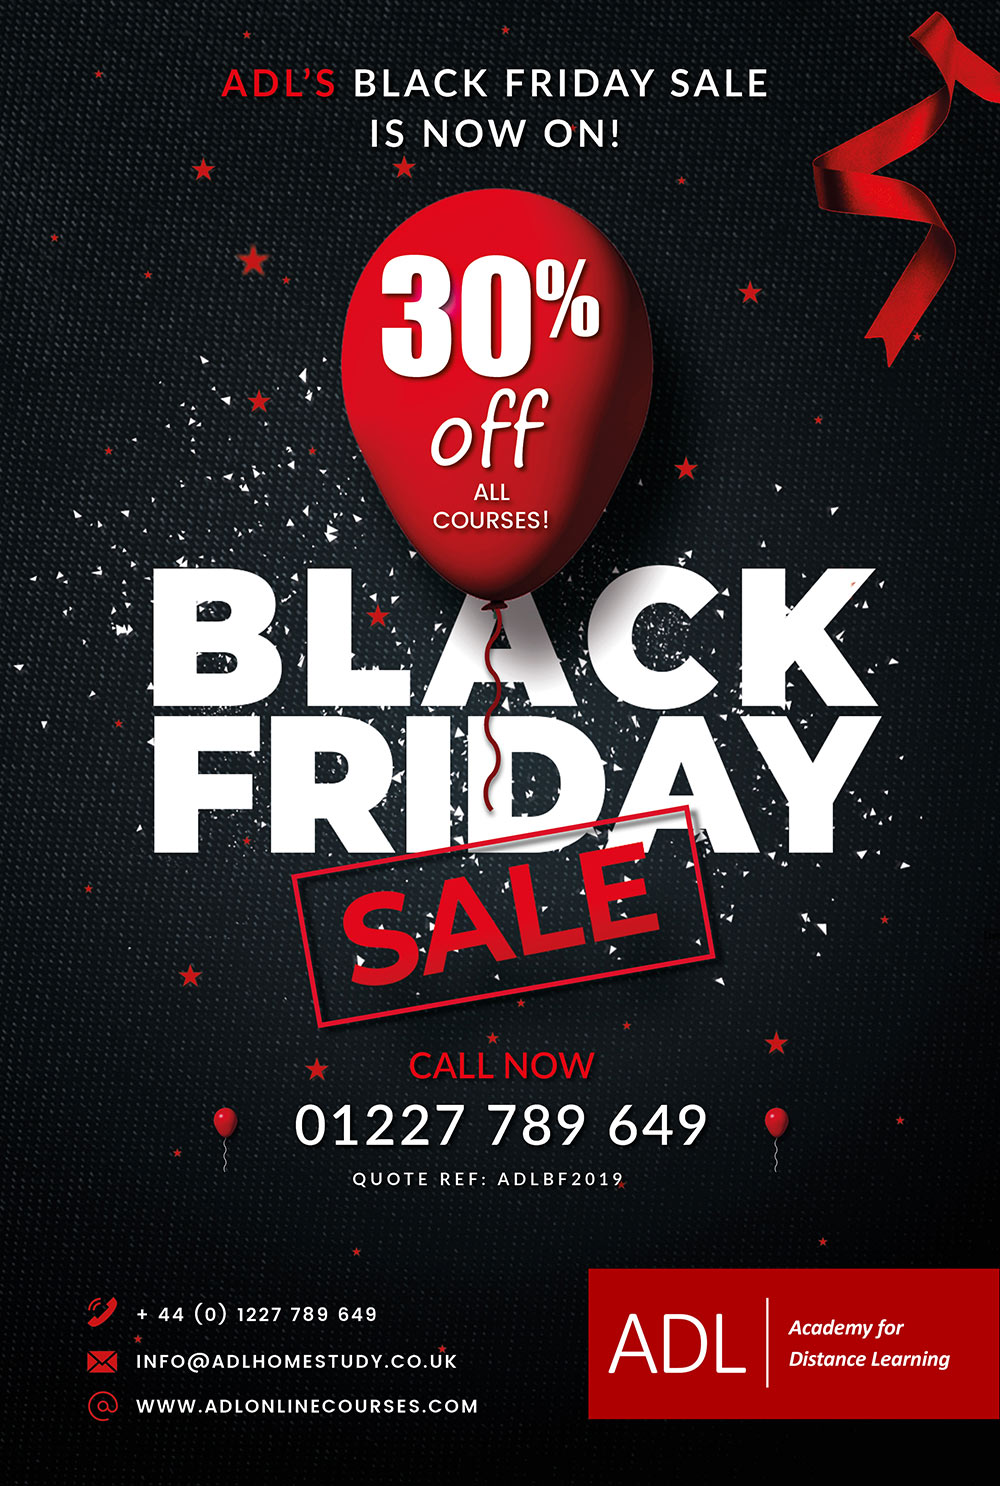 ADL Black Friday Sale 2019 - 30% Off All Courses